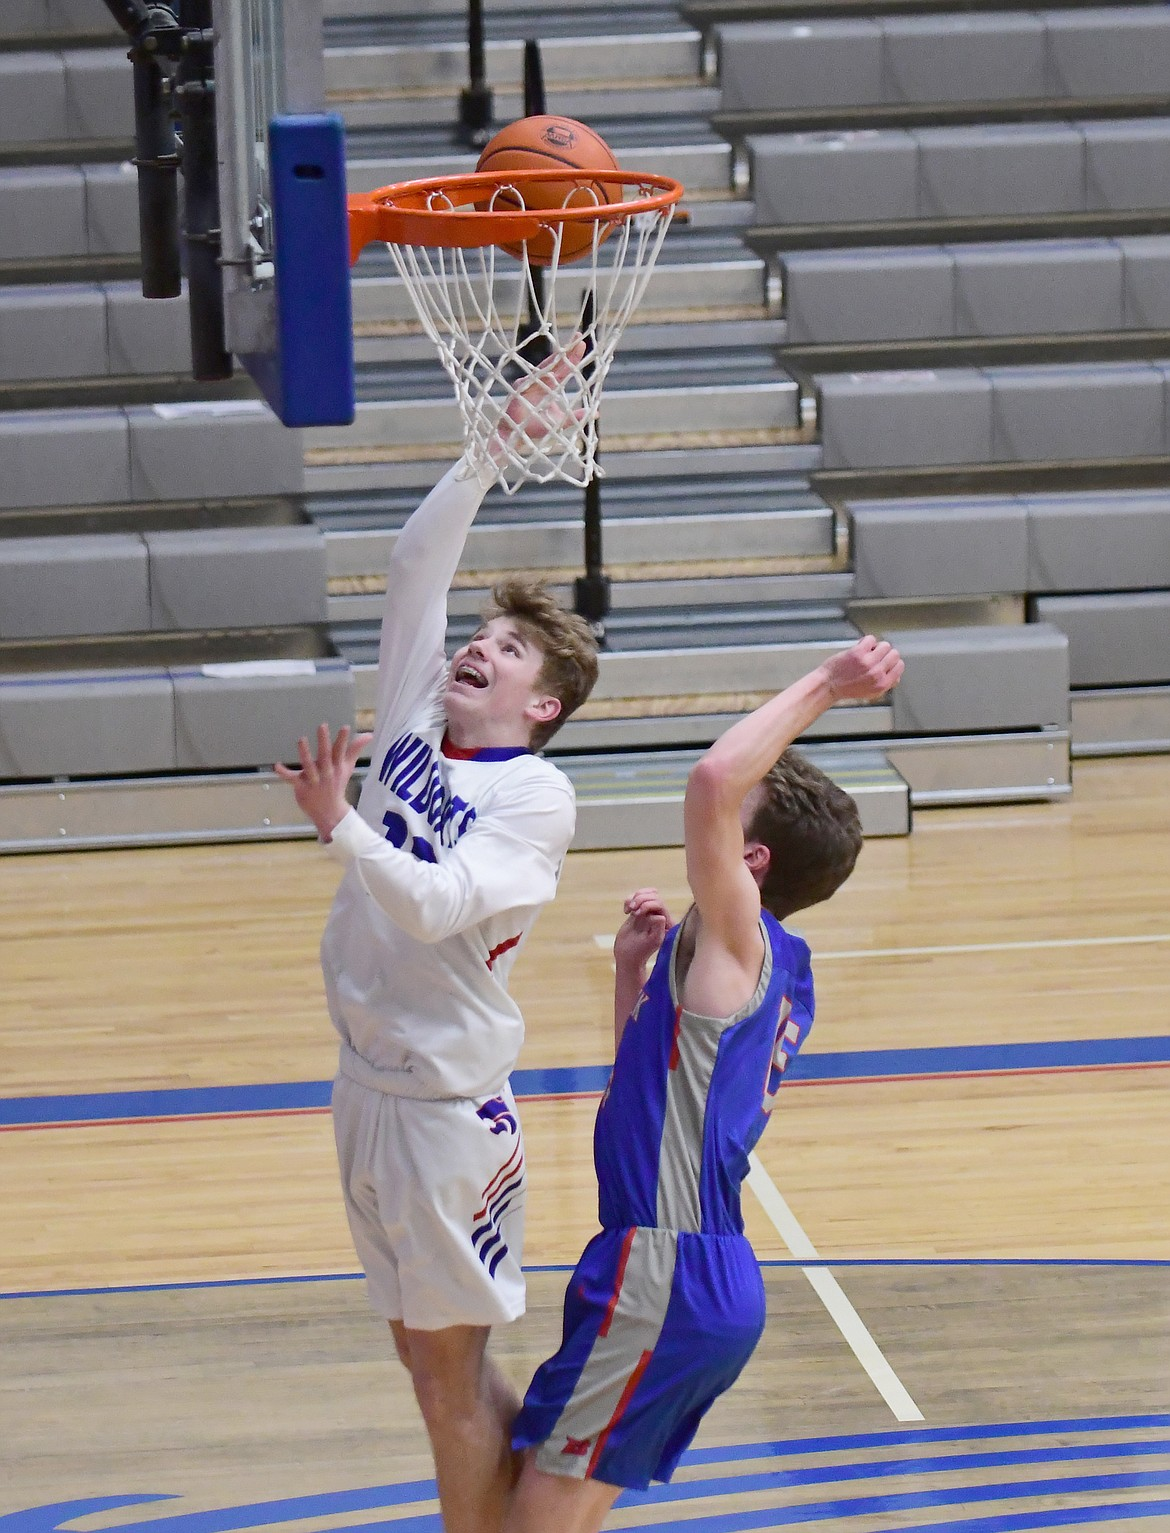 Alihn Anderson with a shot against Bigfork on Tuesday. (Teresa Byrd/Hungry Horse News)